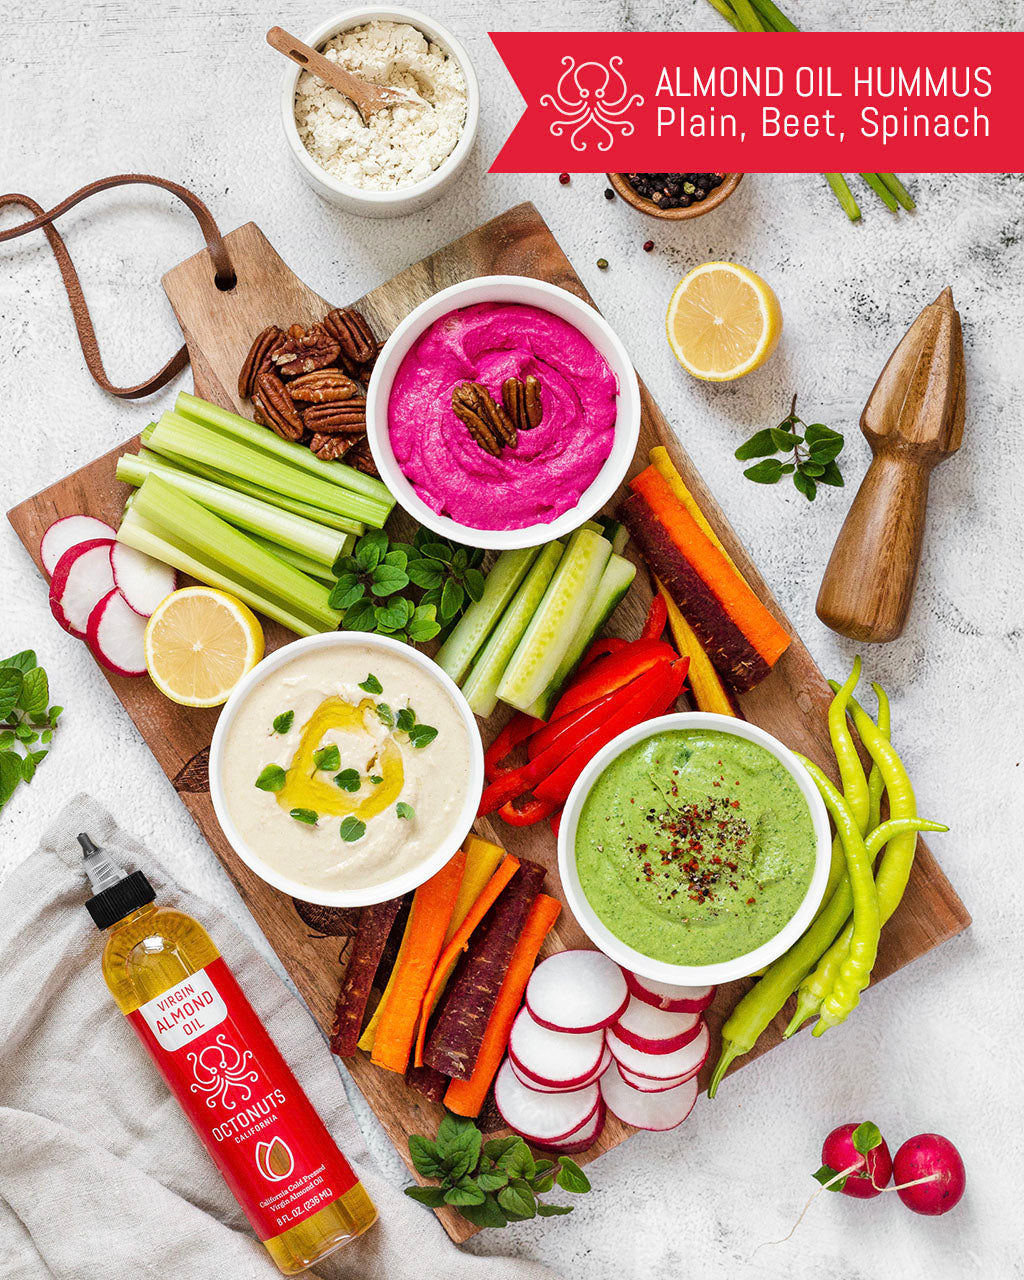 Octonuts Almond Oil Hummus 3 Ways: Plain, Beet and Spinach